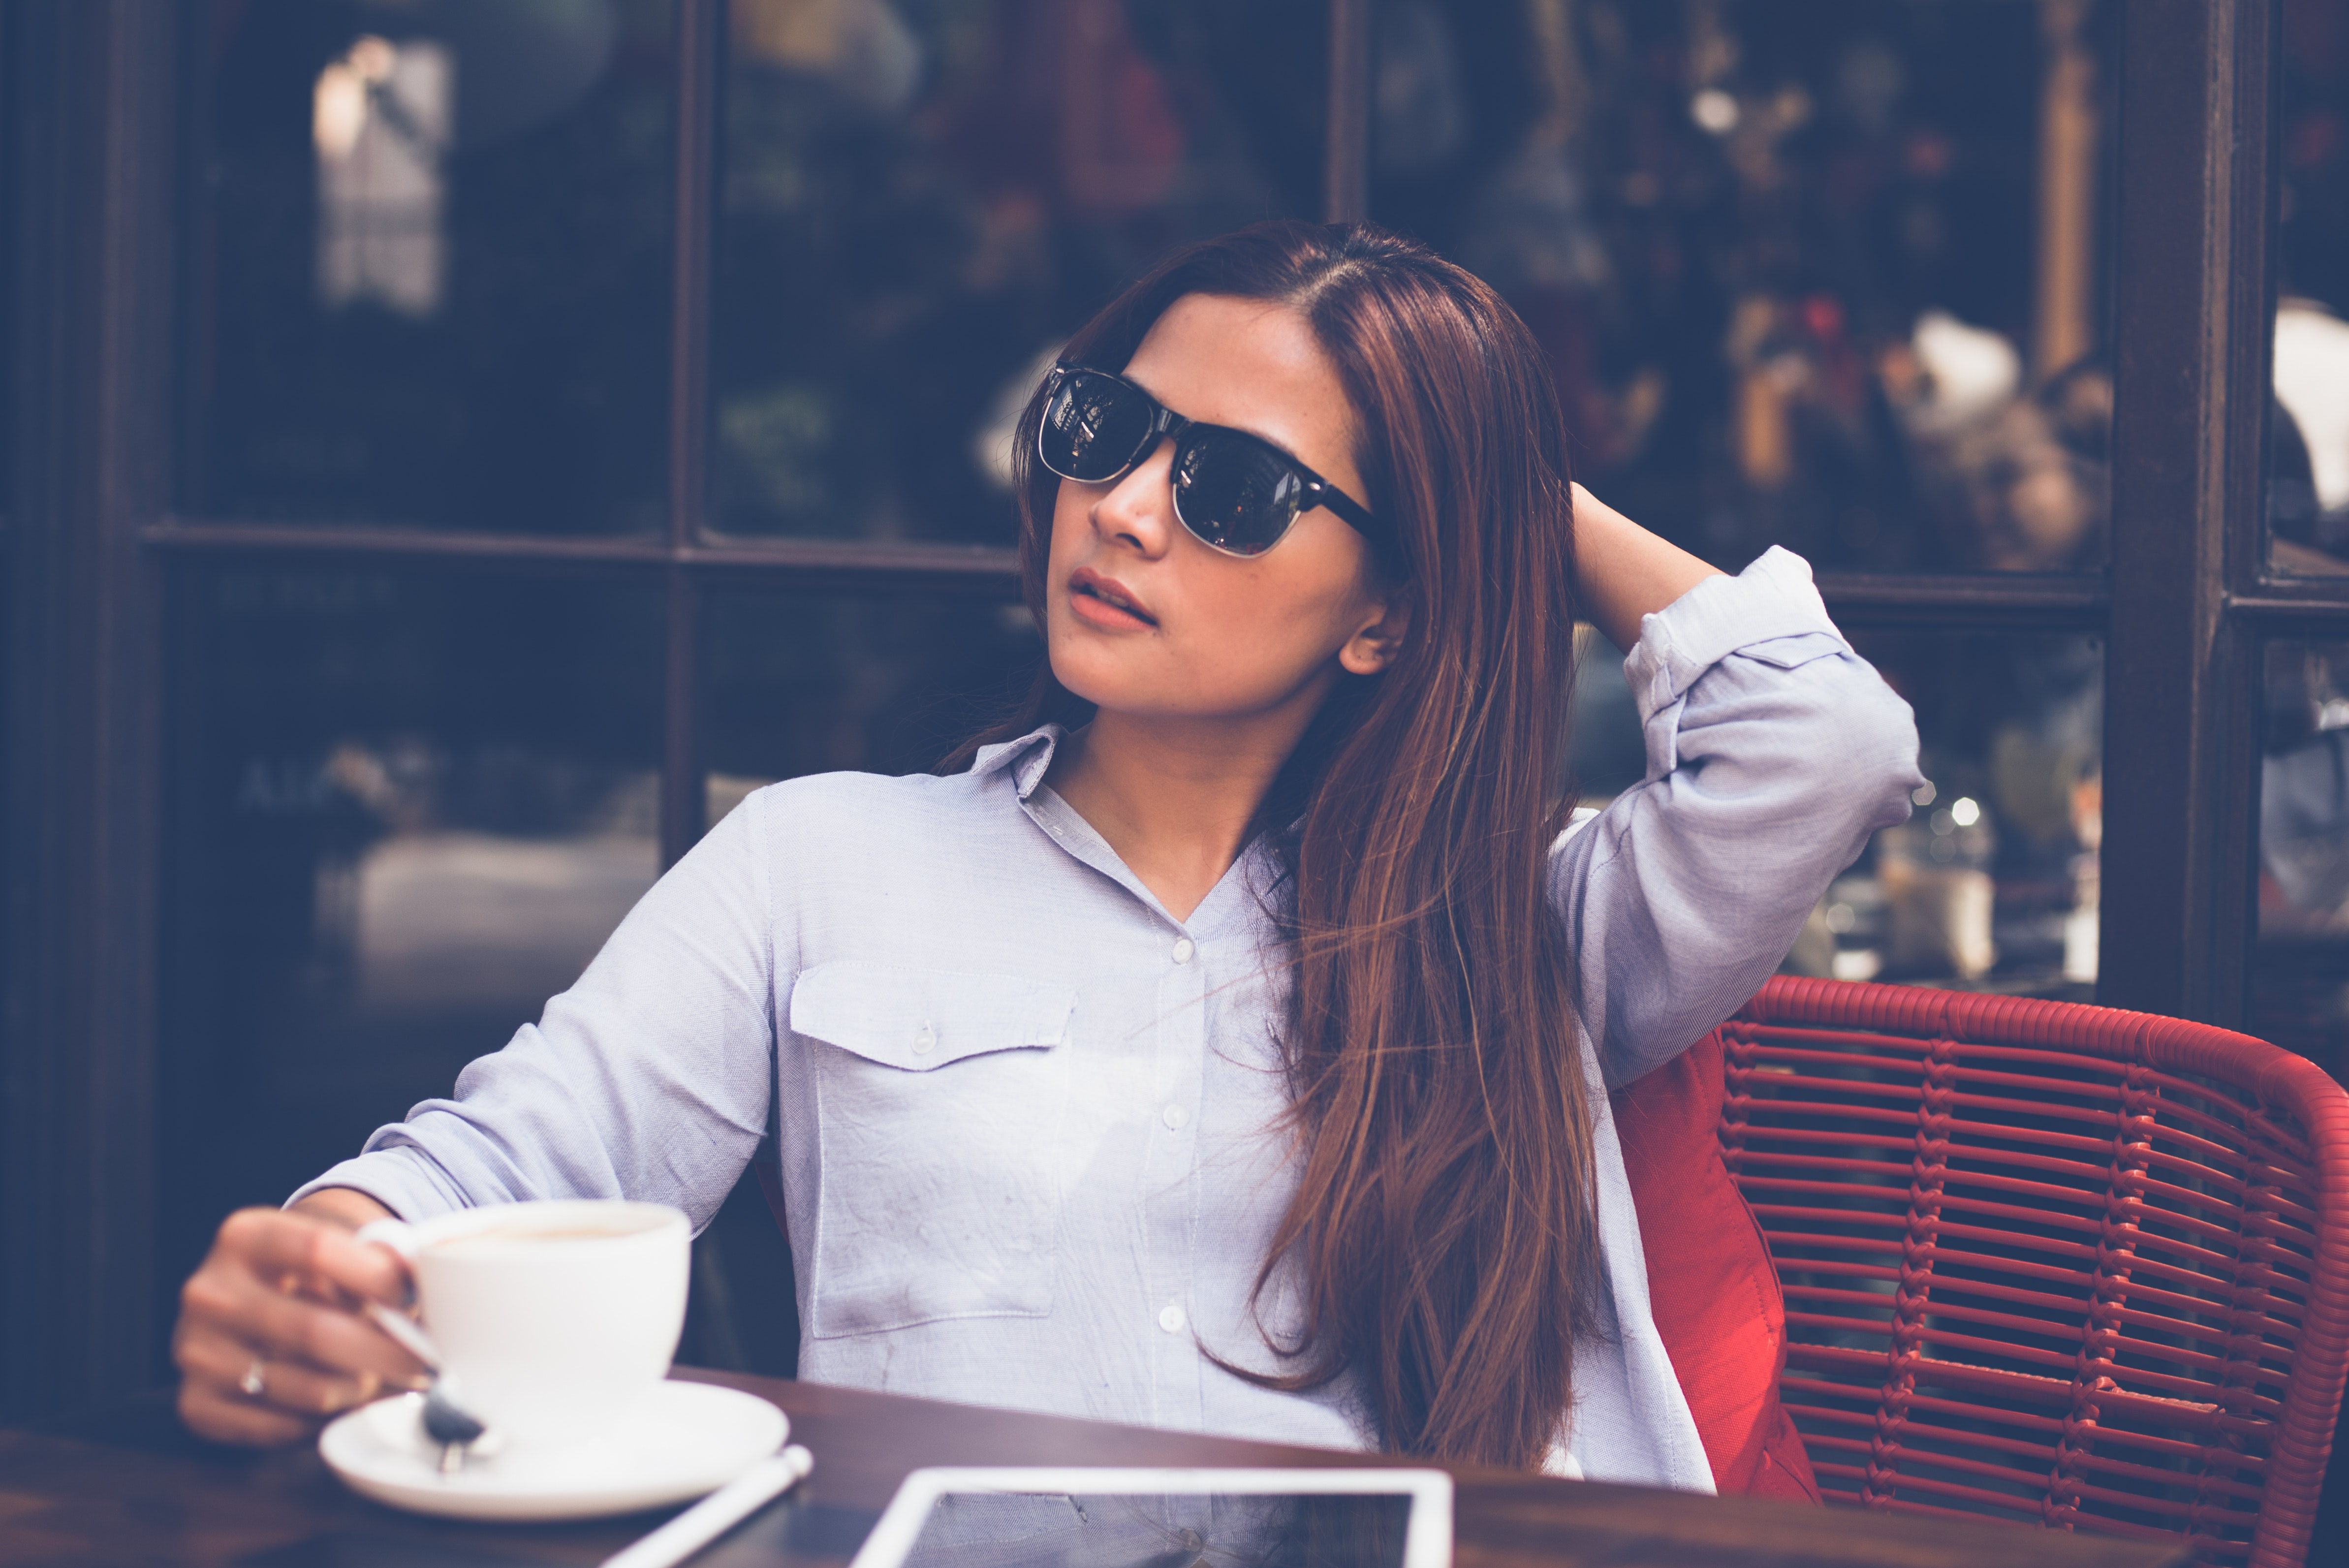 Portrait of Young Woman Drinking Coffee at Home, Table, Portrait, Relaxation, Restaurant, HQ Photo